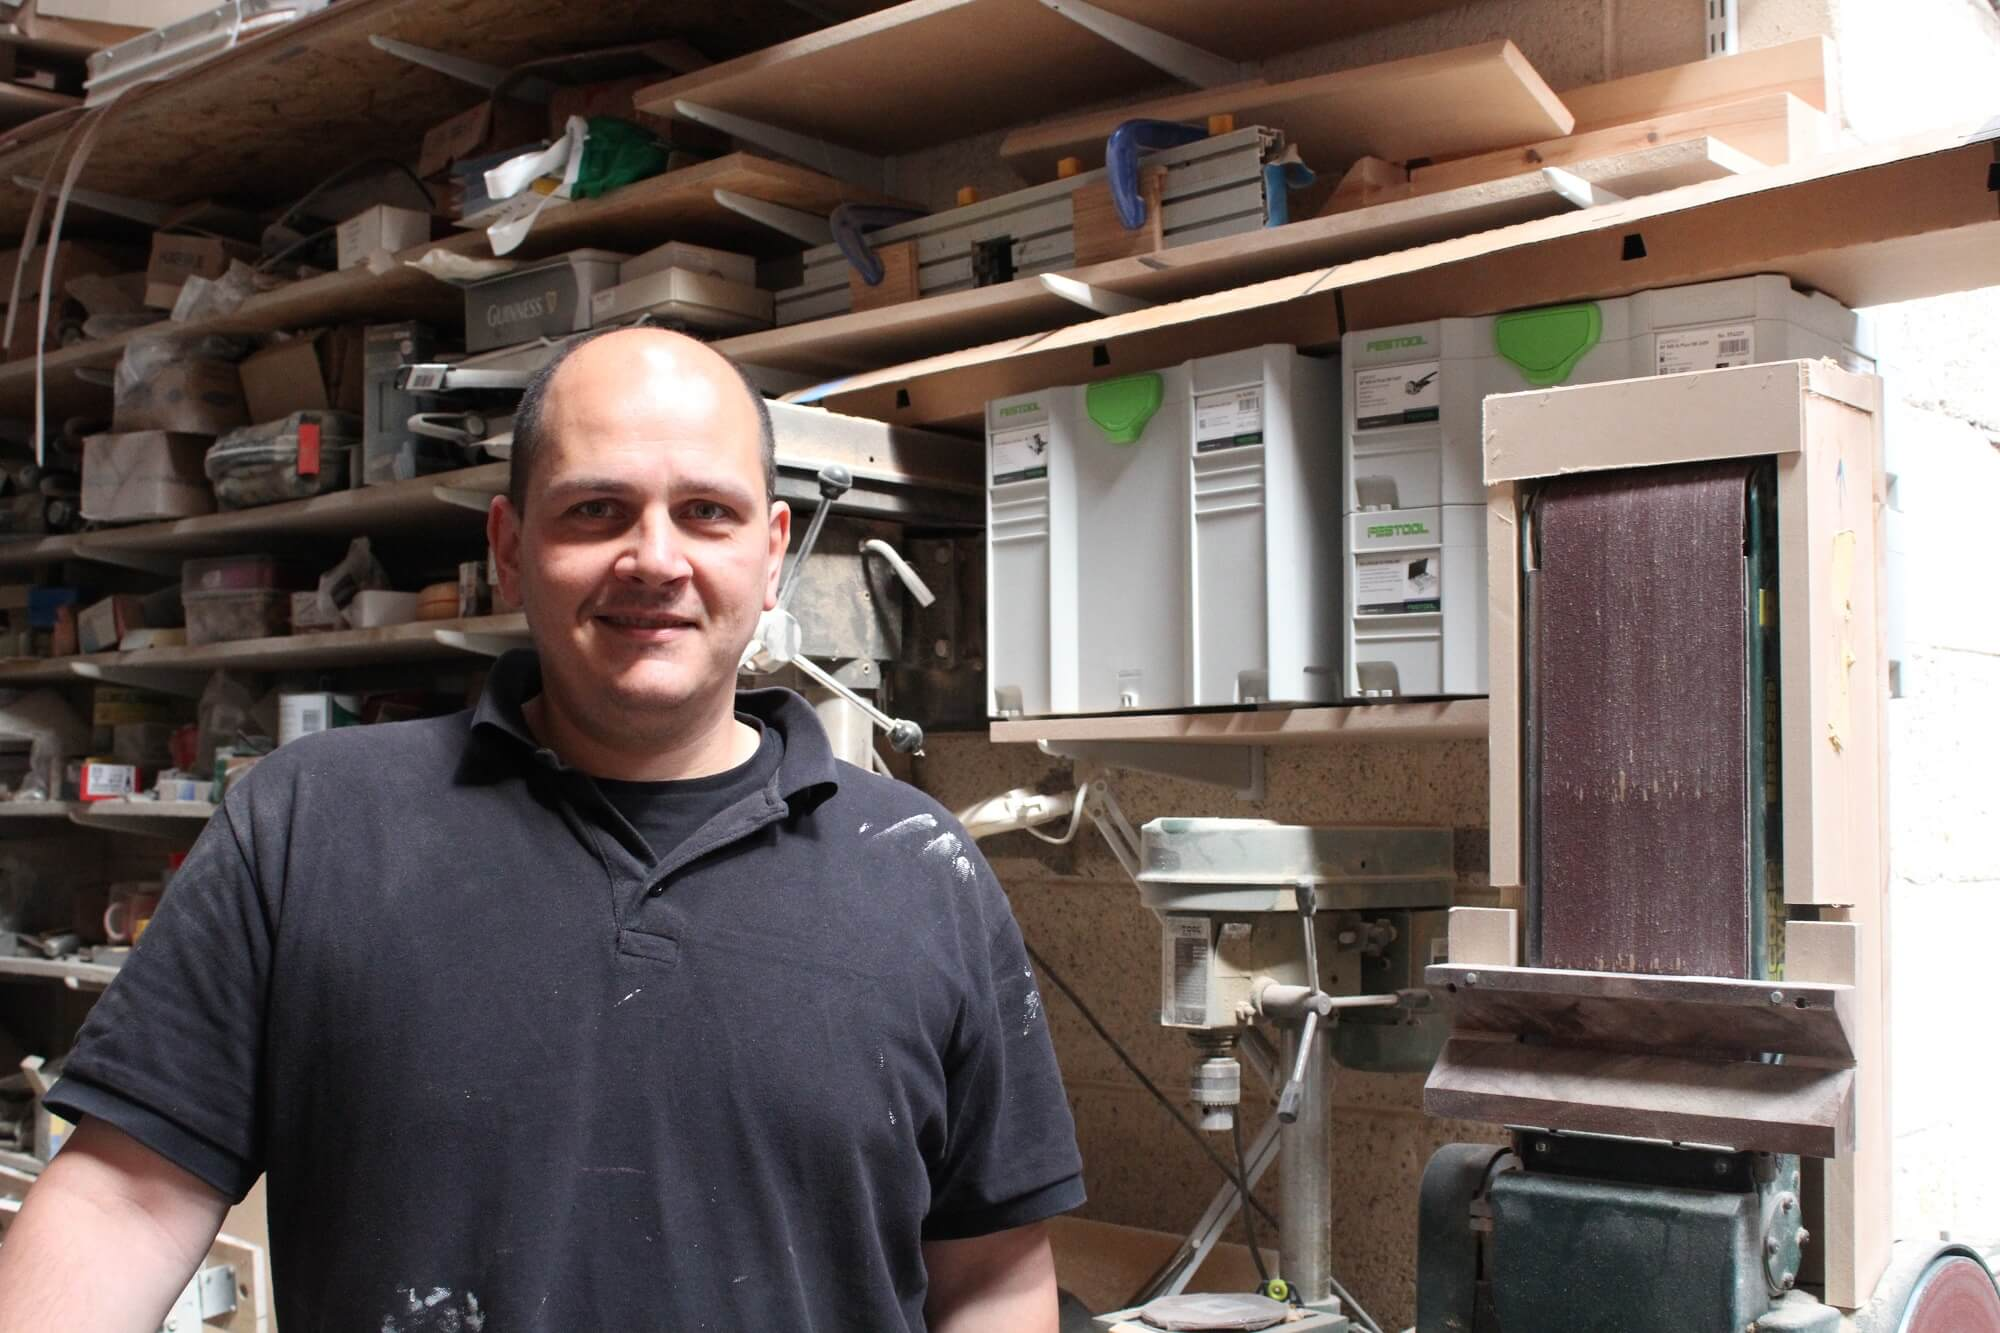 South Yorkshire craftsman carves out new business focus